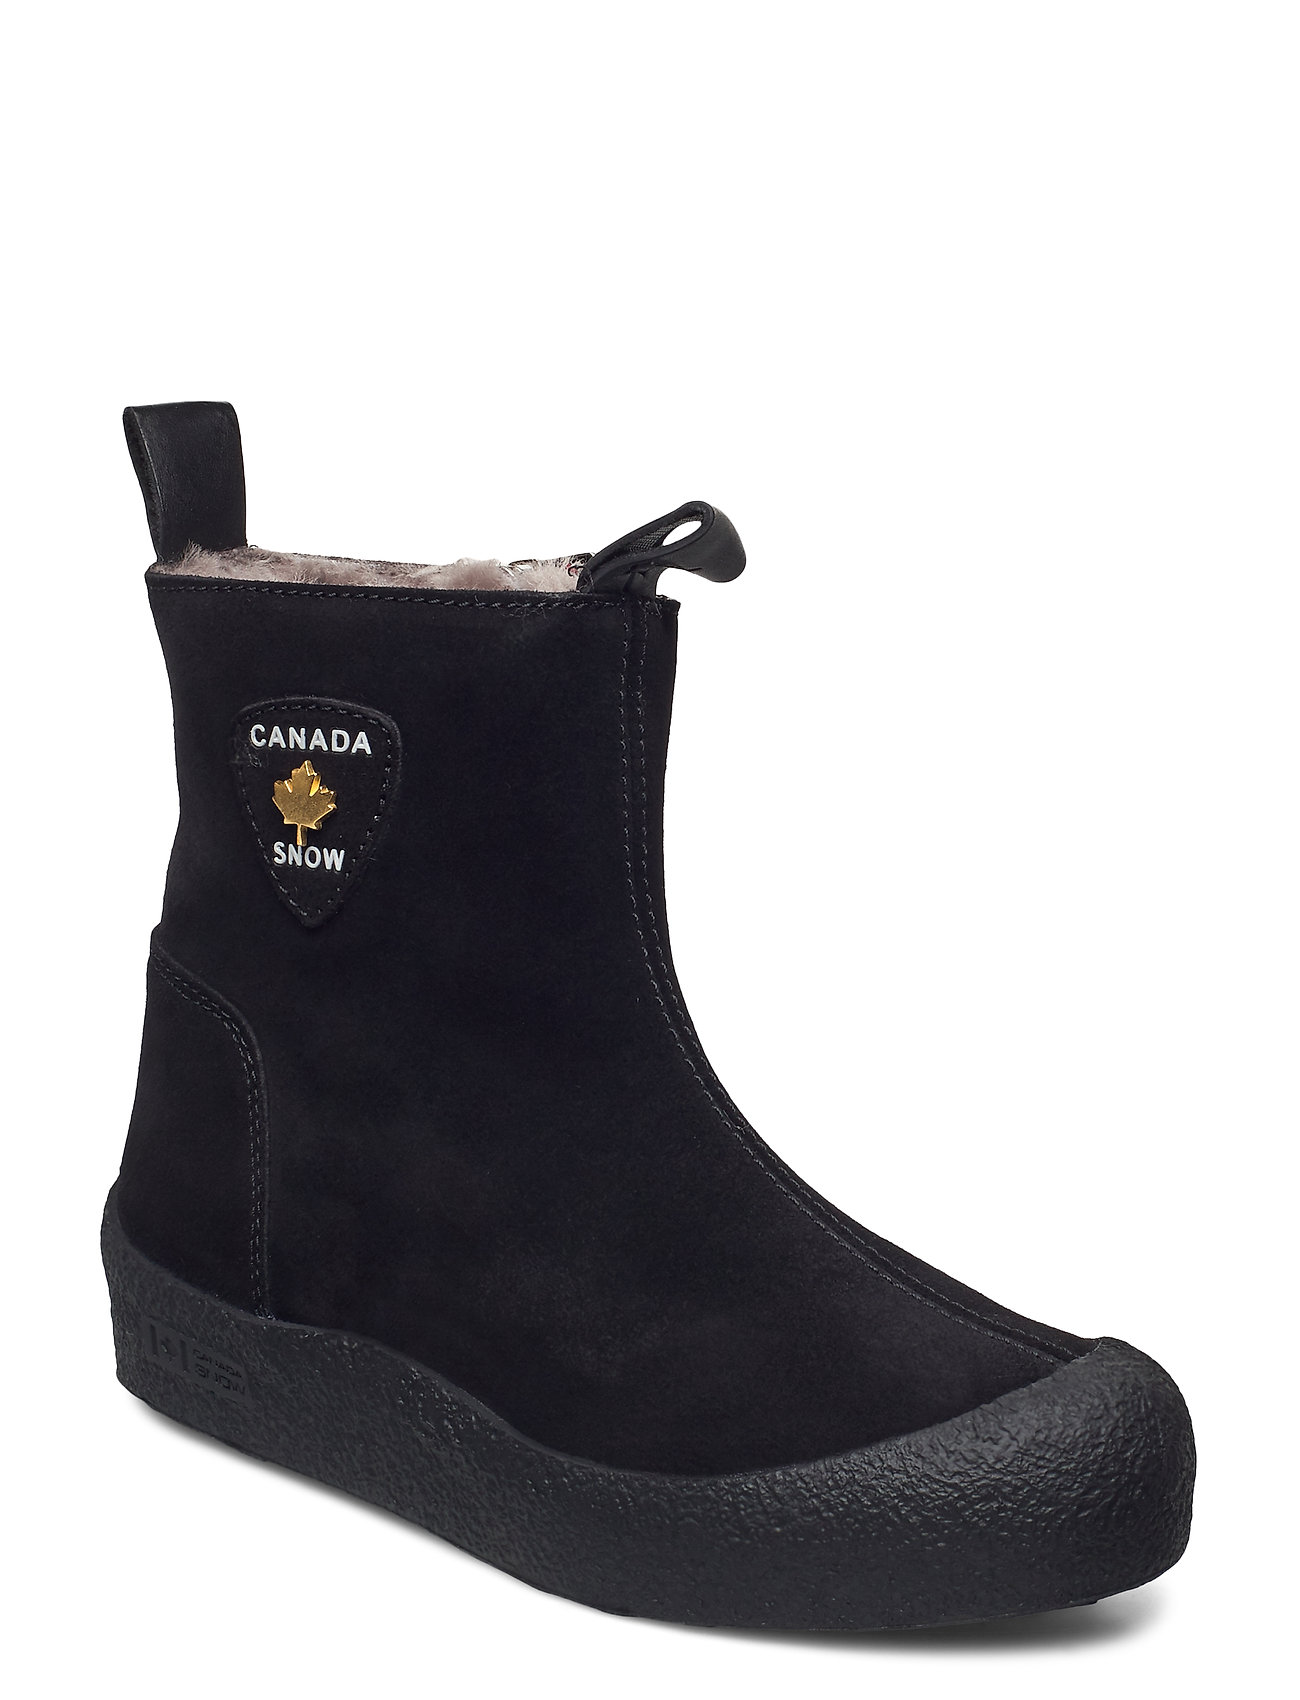 Image of Quebec Gold Shoes Boots Ankle Boots Ankle Boot - Flat Sort Canada Snow (3447796307)